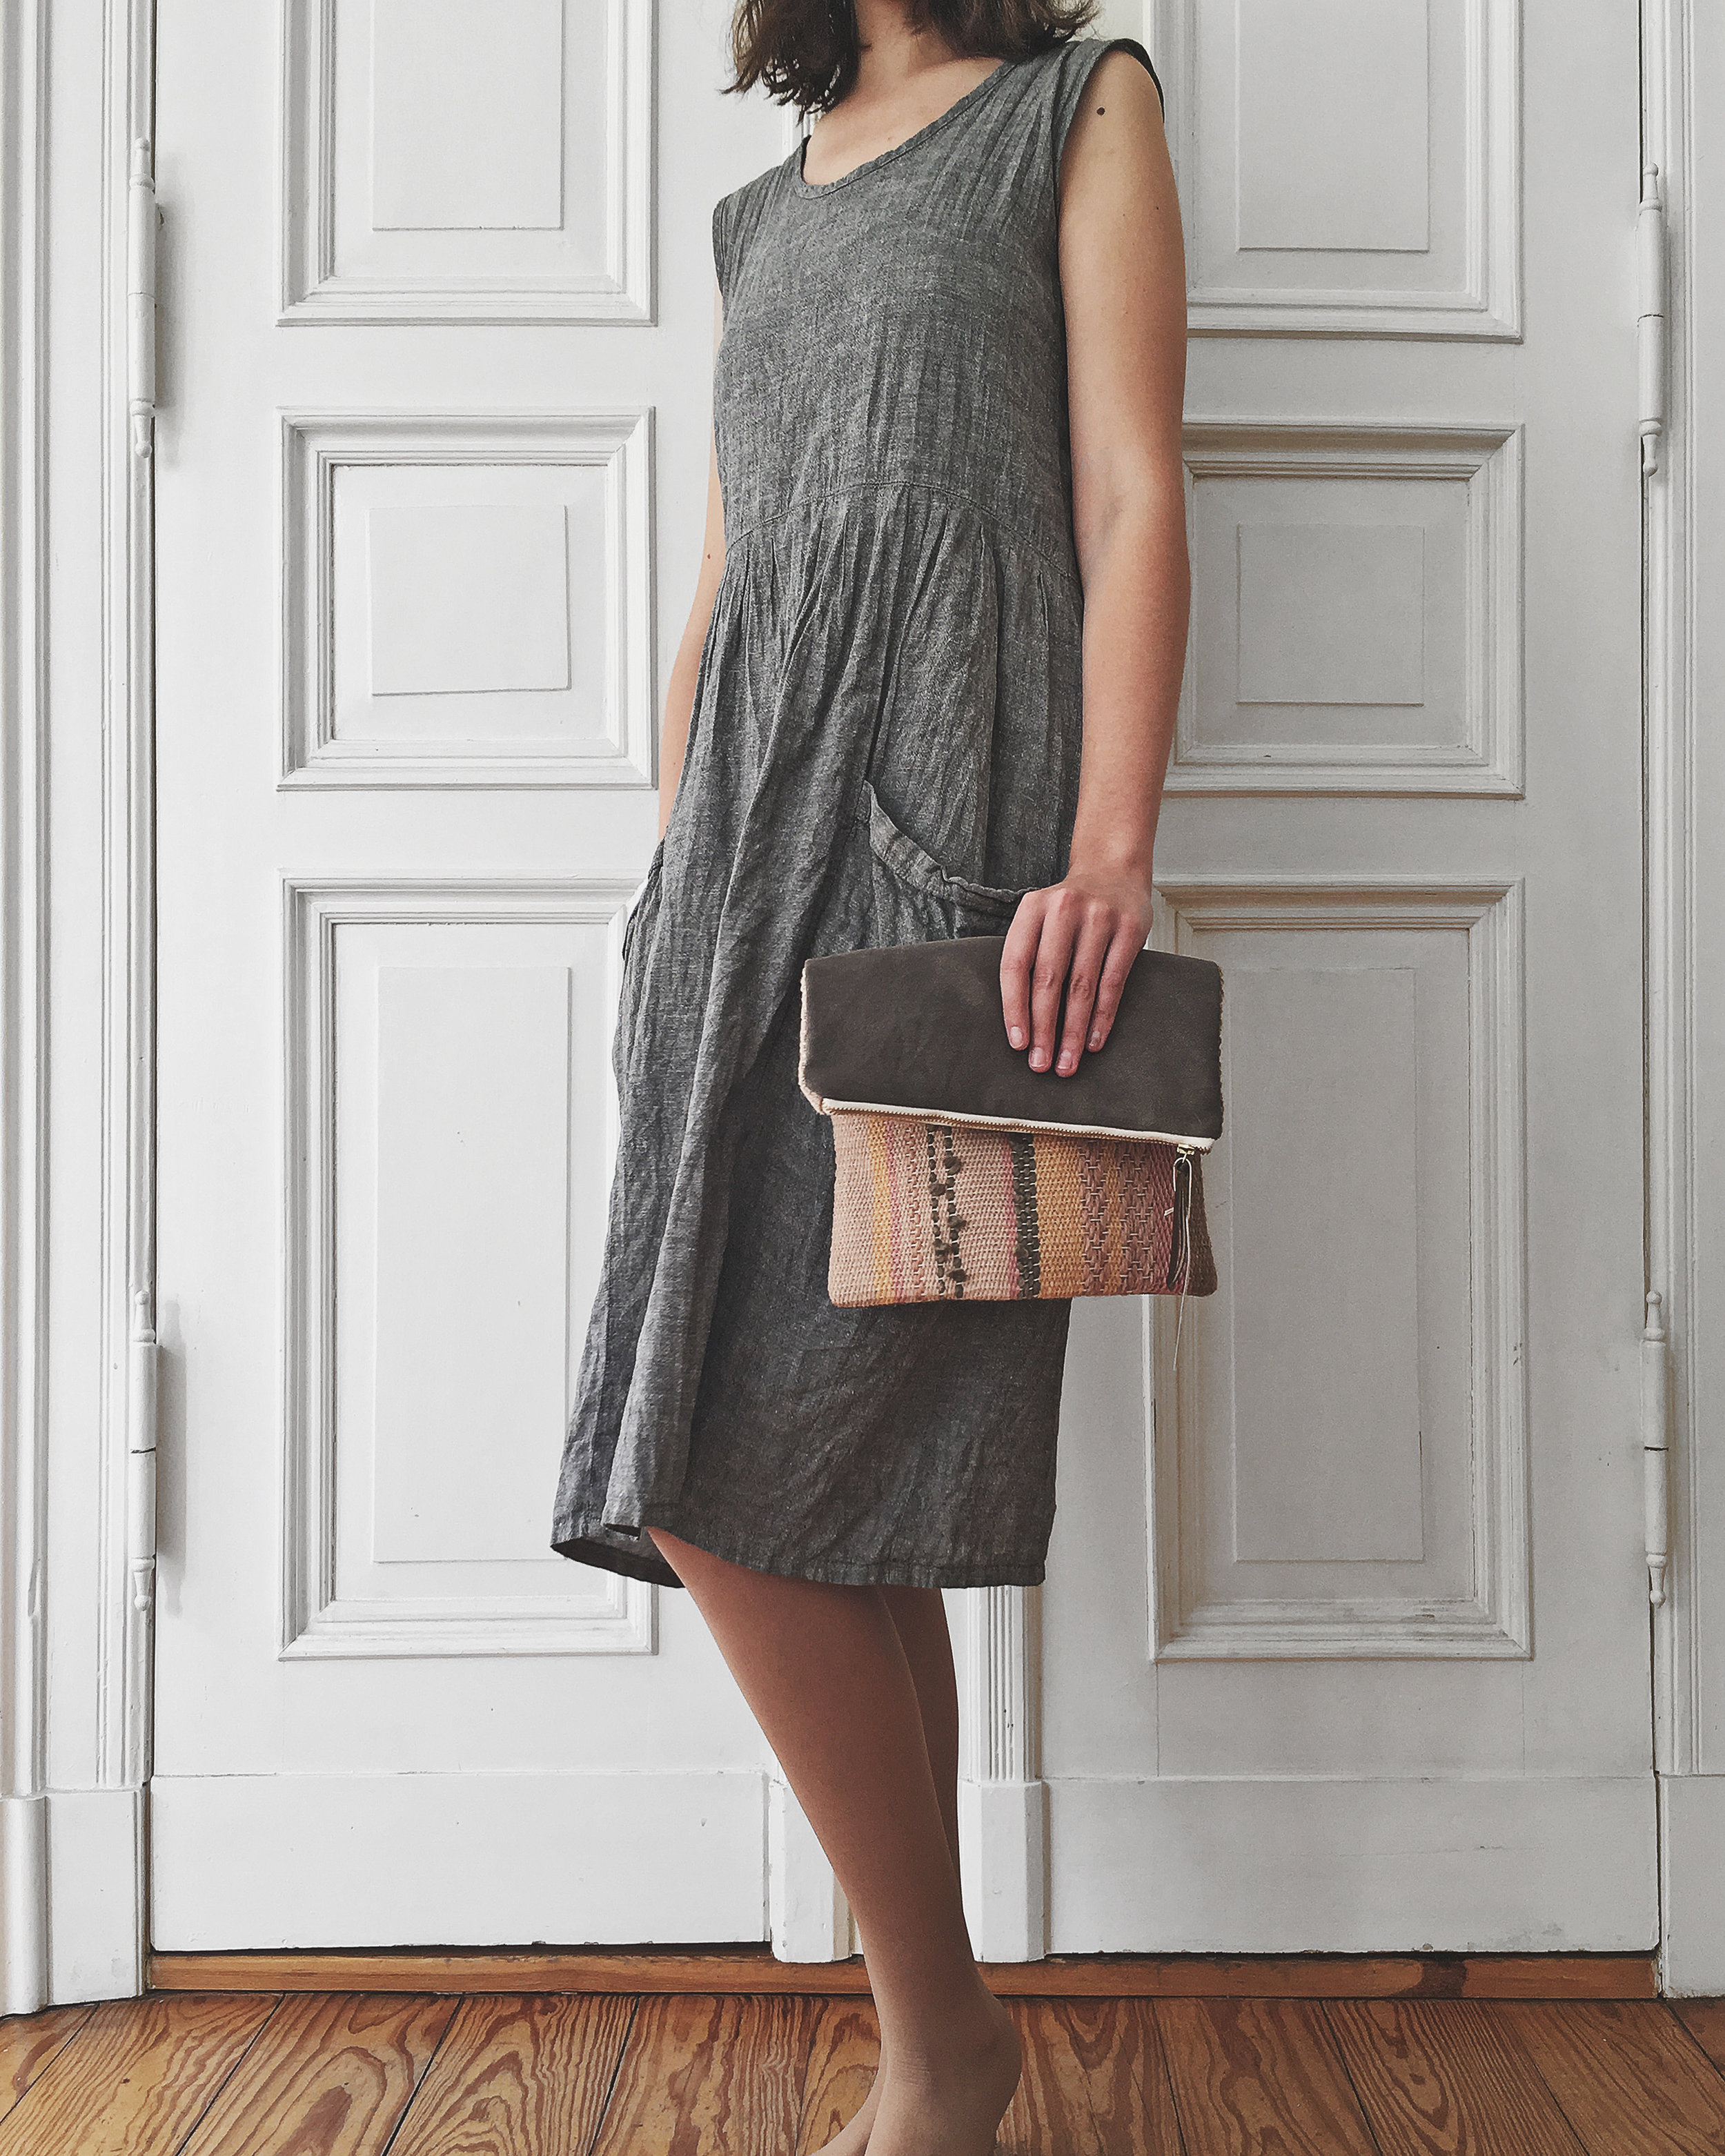 This reversible fold-over clutch was handwoven on a frame loom